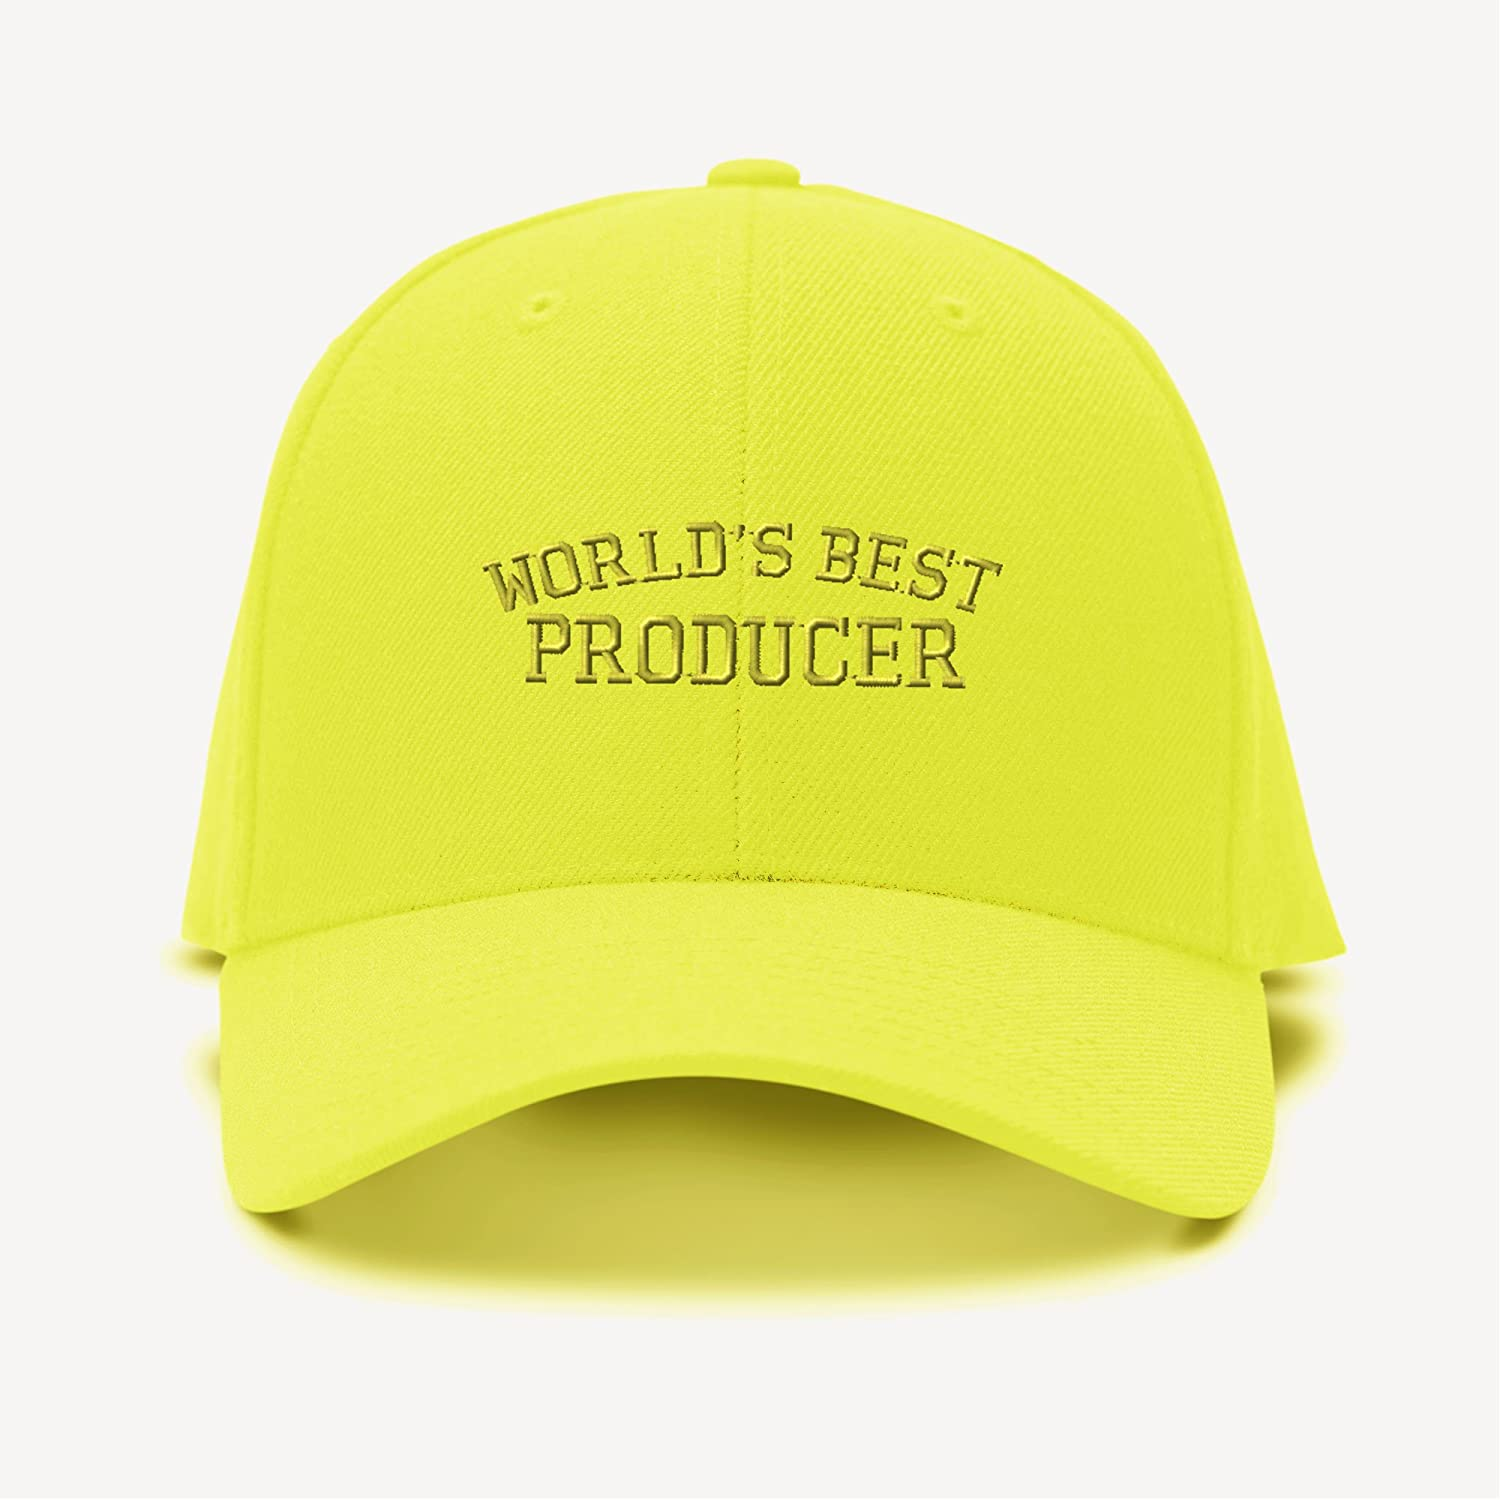 Speedy Pros Worlds Best Producer Embroidery Adjustable Structured Baseball Hat